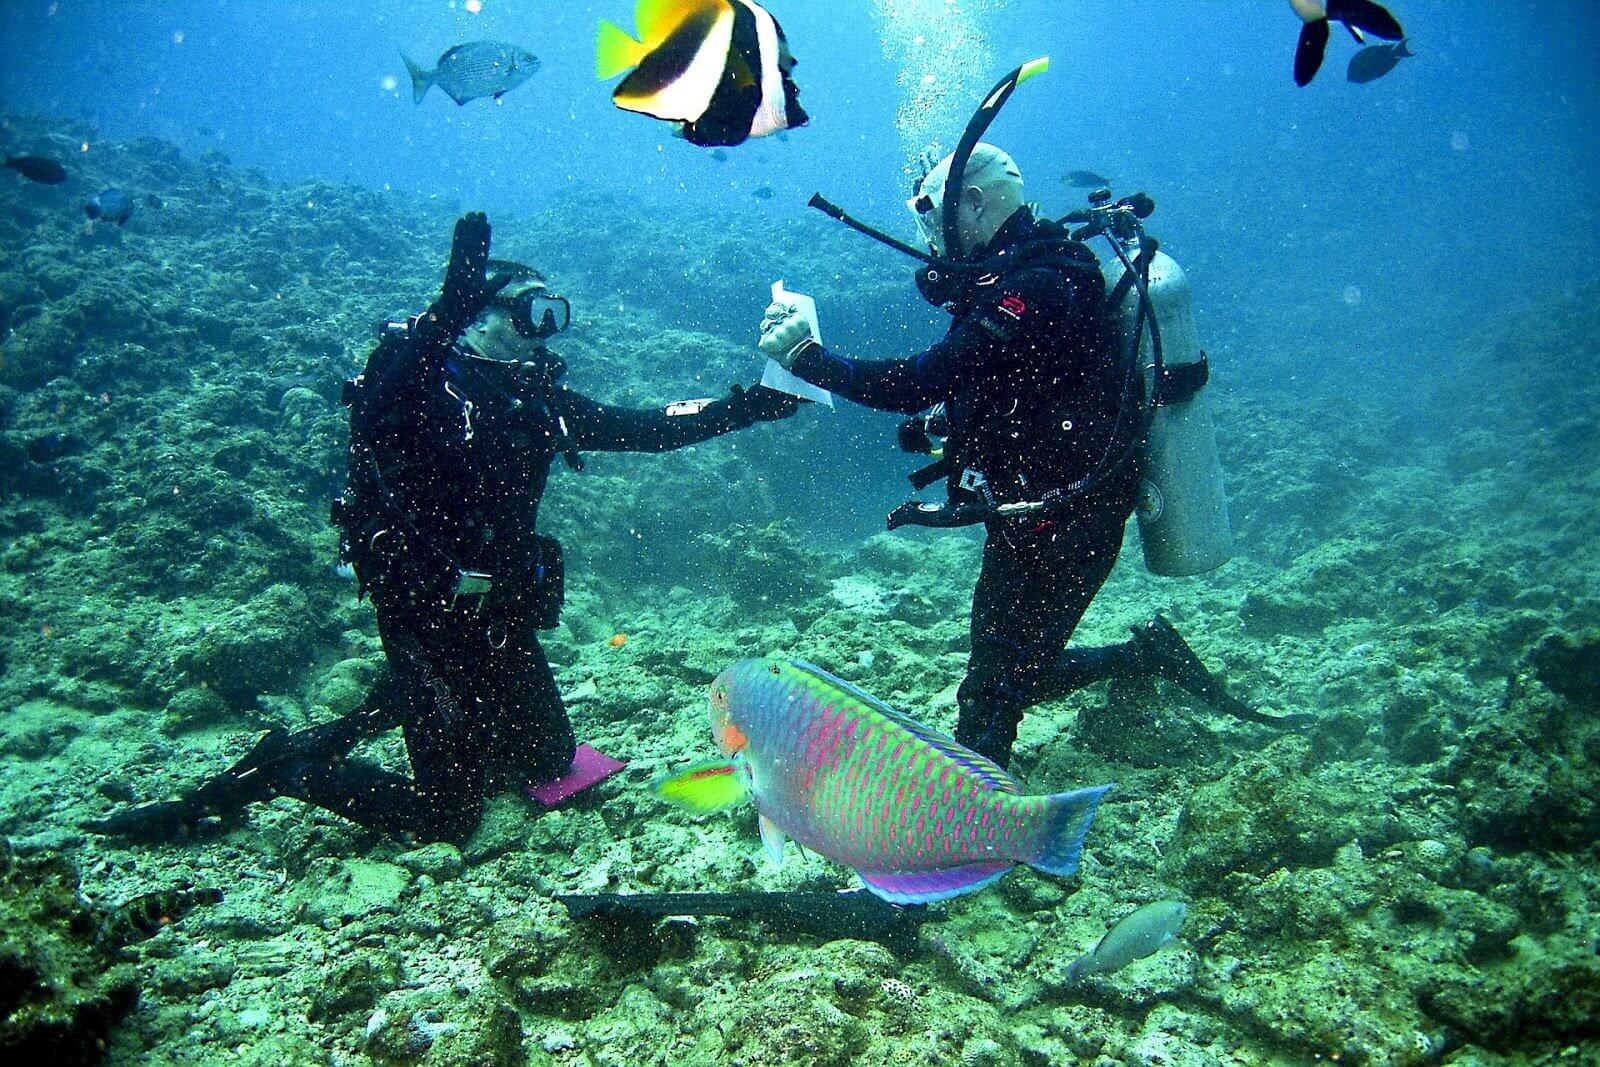 Jobs That Allow You To Travel: Scuba Instructor